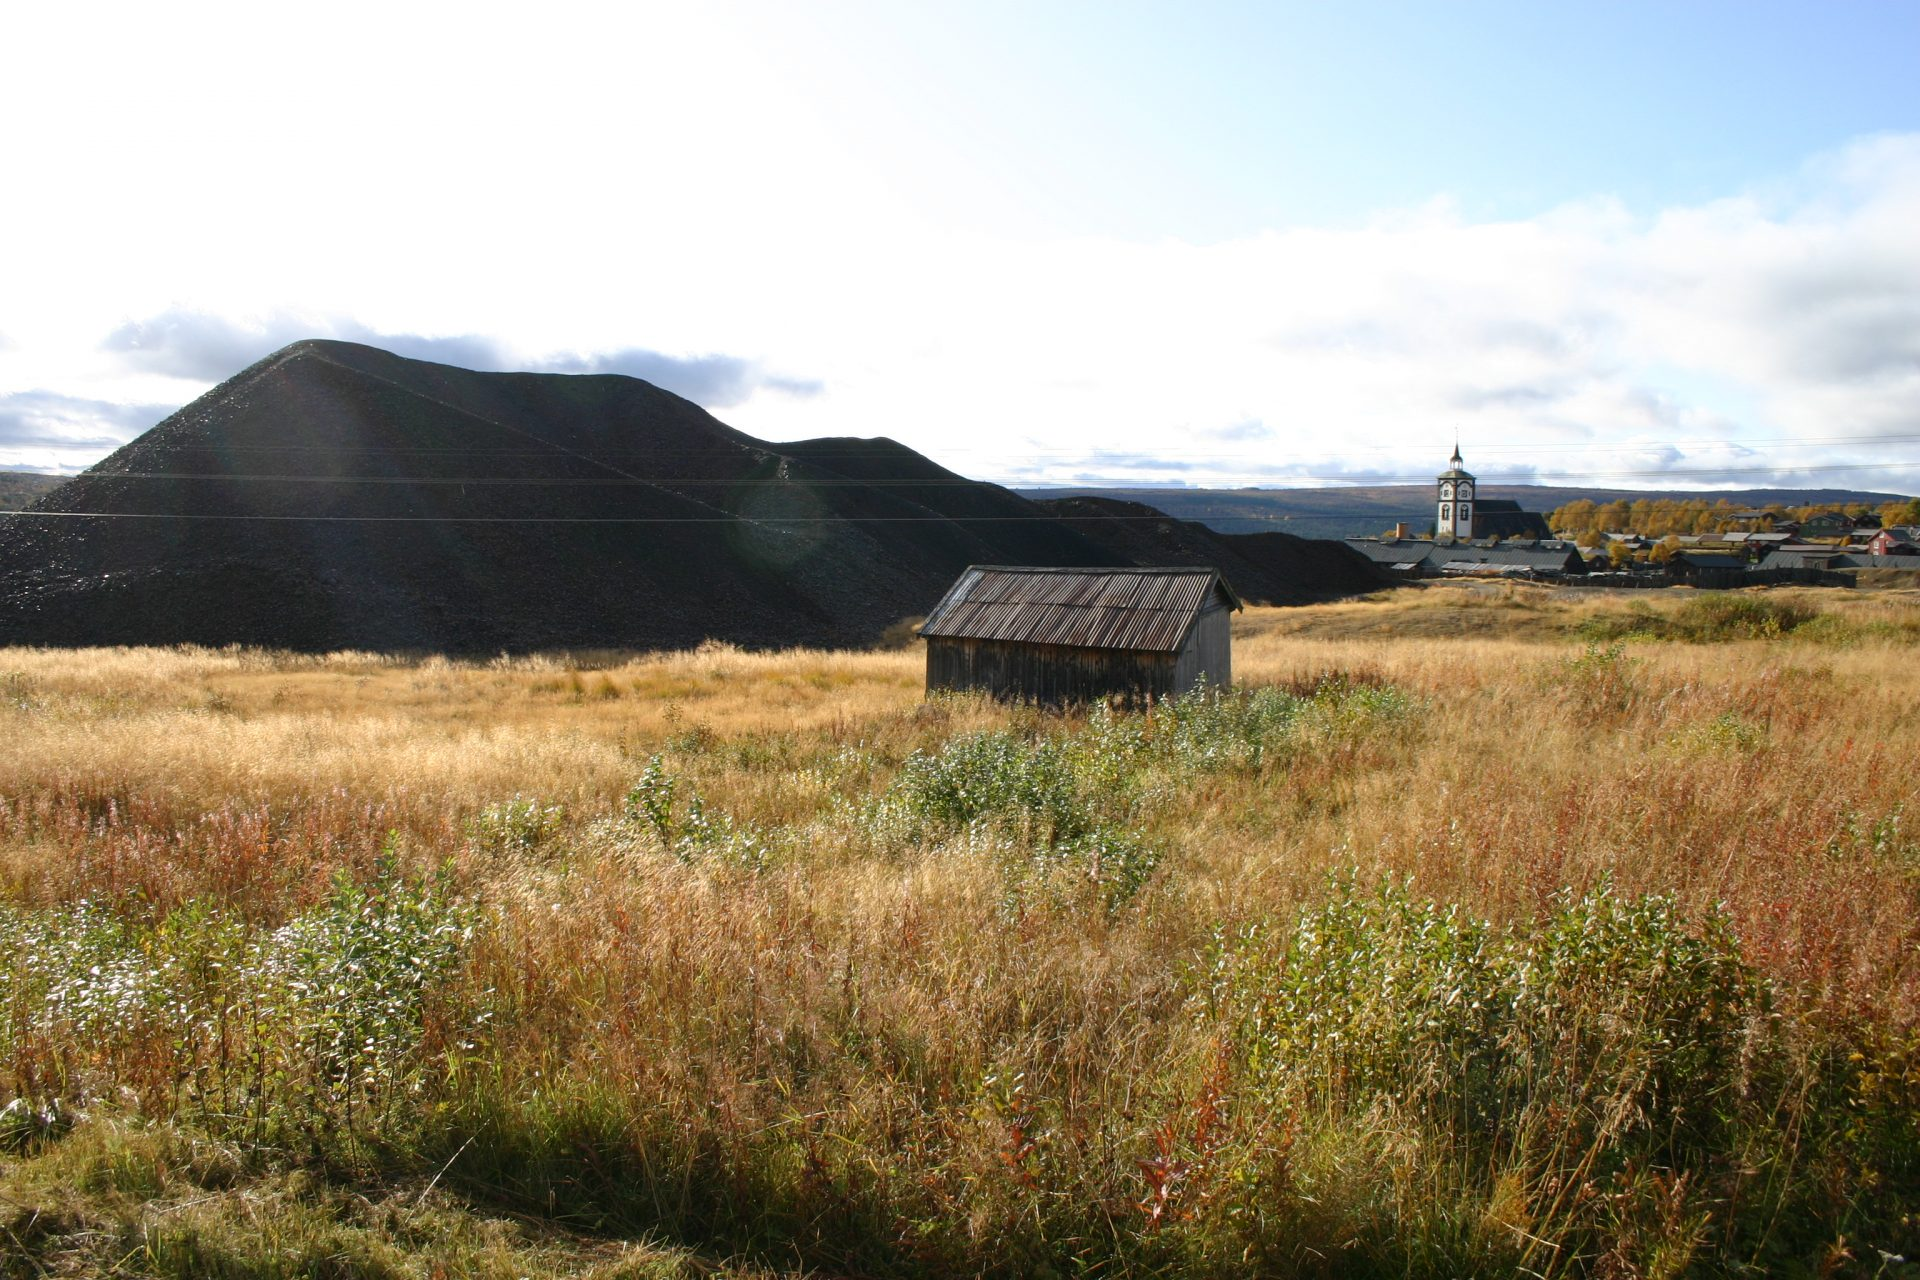 Roykskadehaga. From the beautiful heritage landscape featuring slag mounds near Røros. Lisen Roll, the Directorate for Cultural Heritage